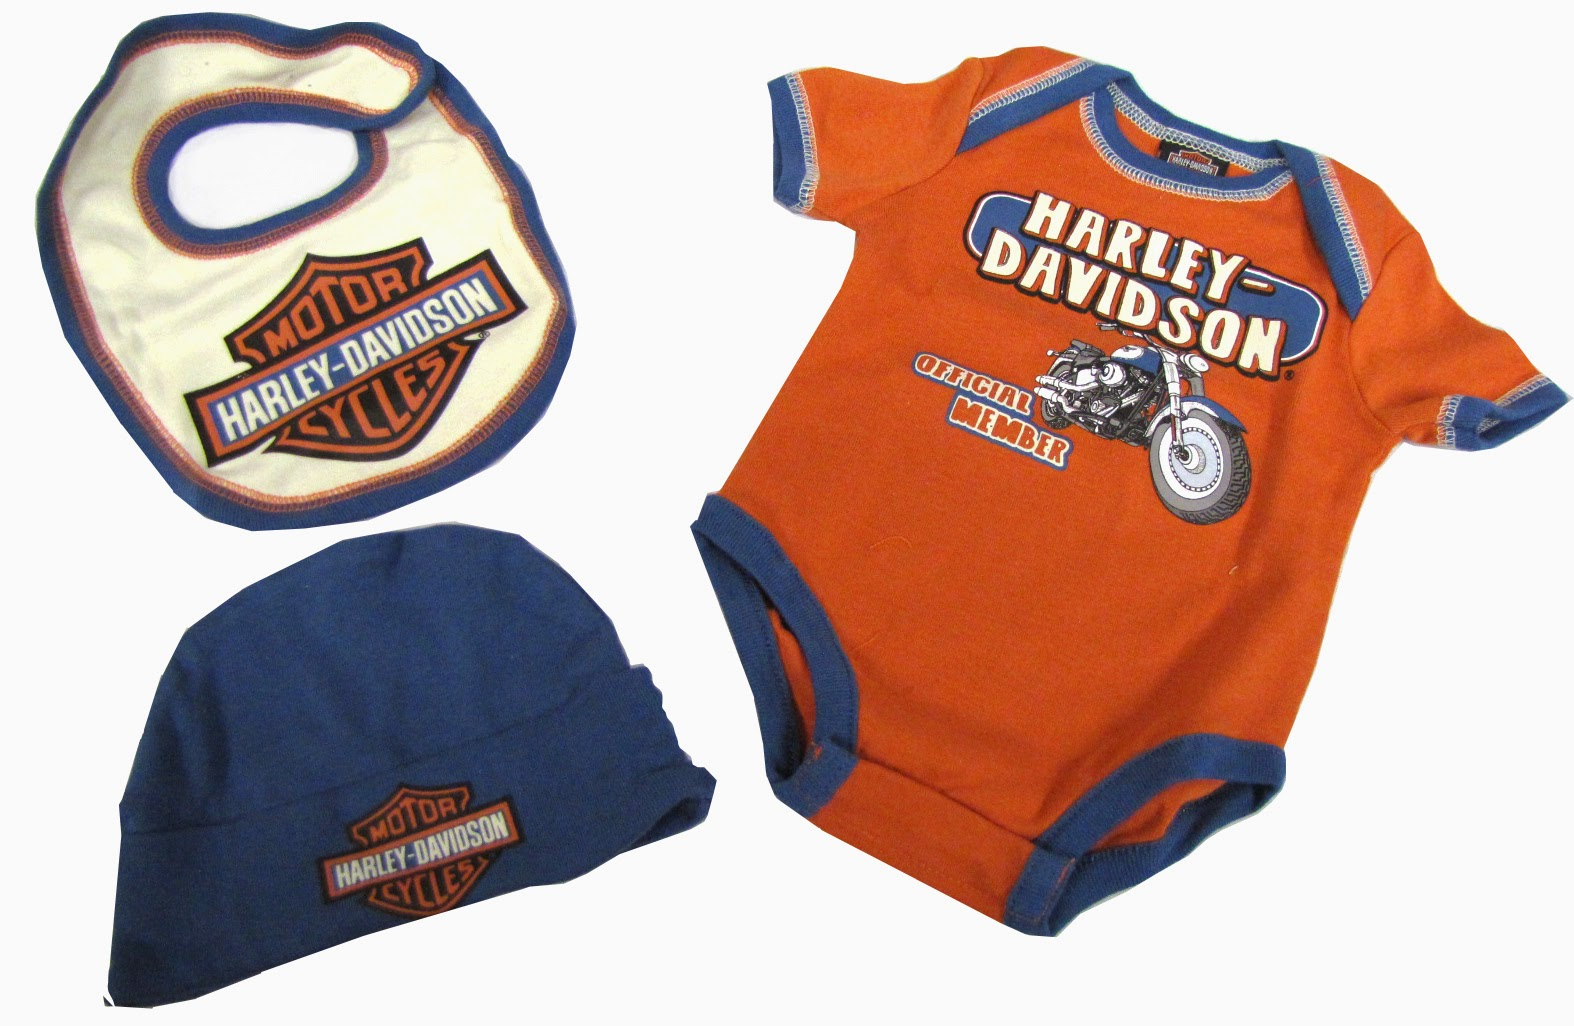 http://www.adventureharley.com/harley-davidson-infant-boys-3-piece-gift-box-set